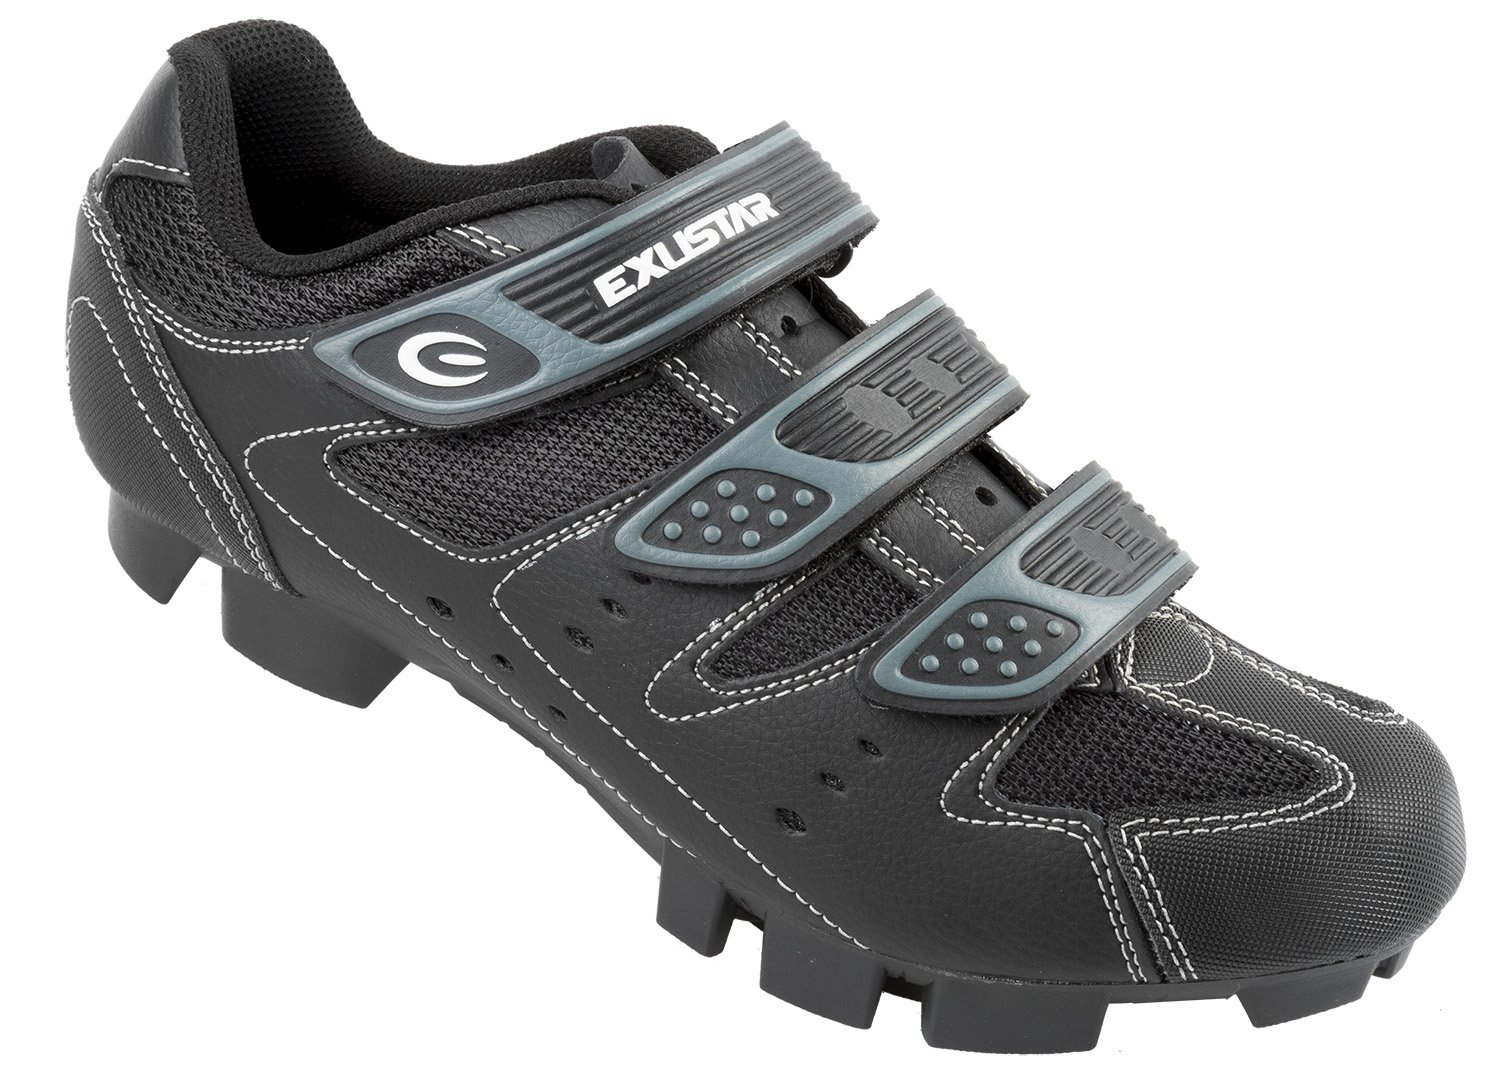 Exustar Men's SM324 Cycling Shoe B0039ZTV8U 5 M US|Black